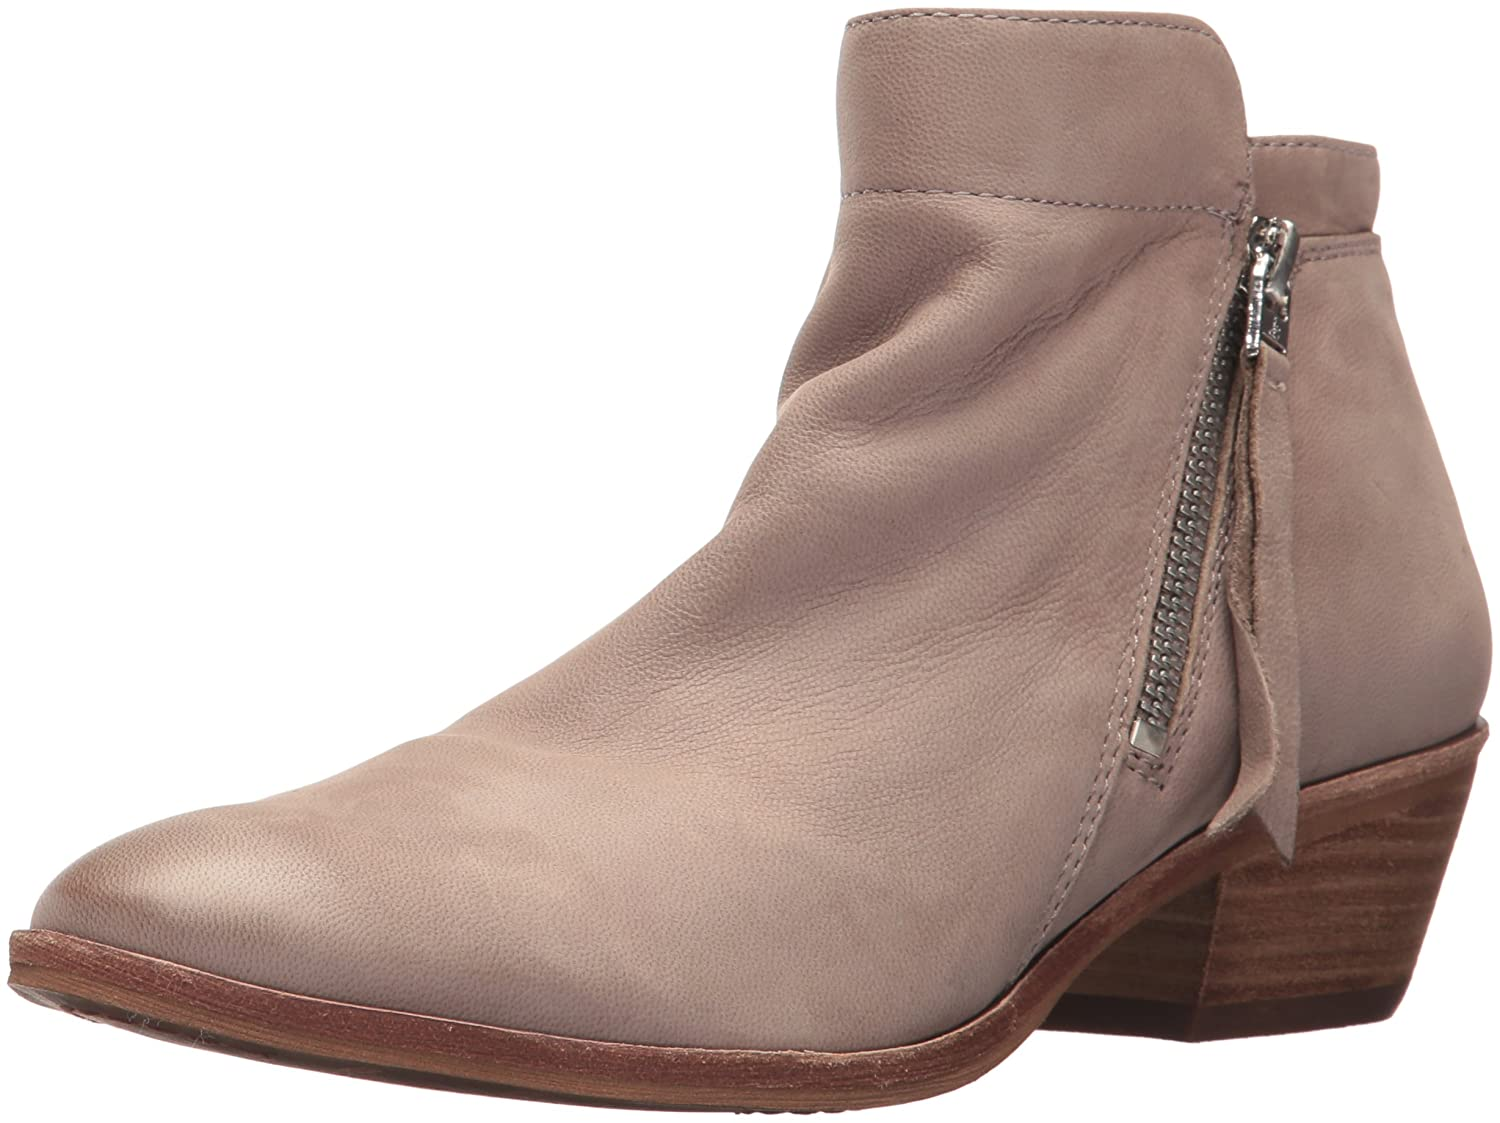 Sam Edelman Women's Packer Ankle Boot B06XC9ZLXD 11.5 B(M) US|Putty Leather